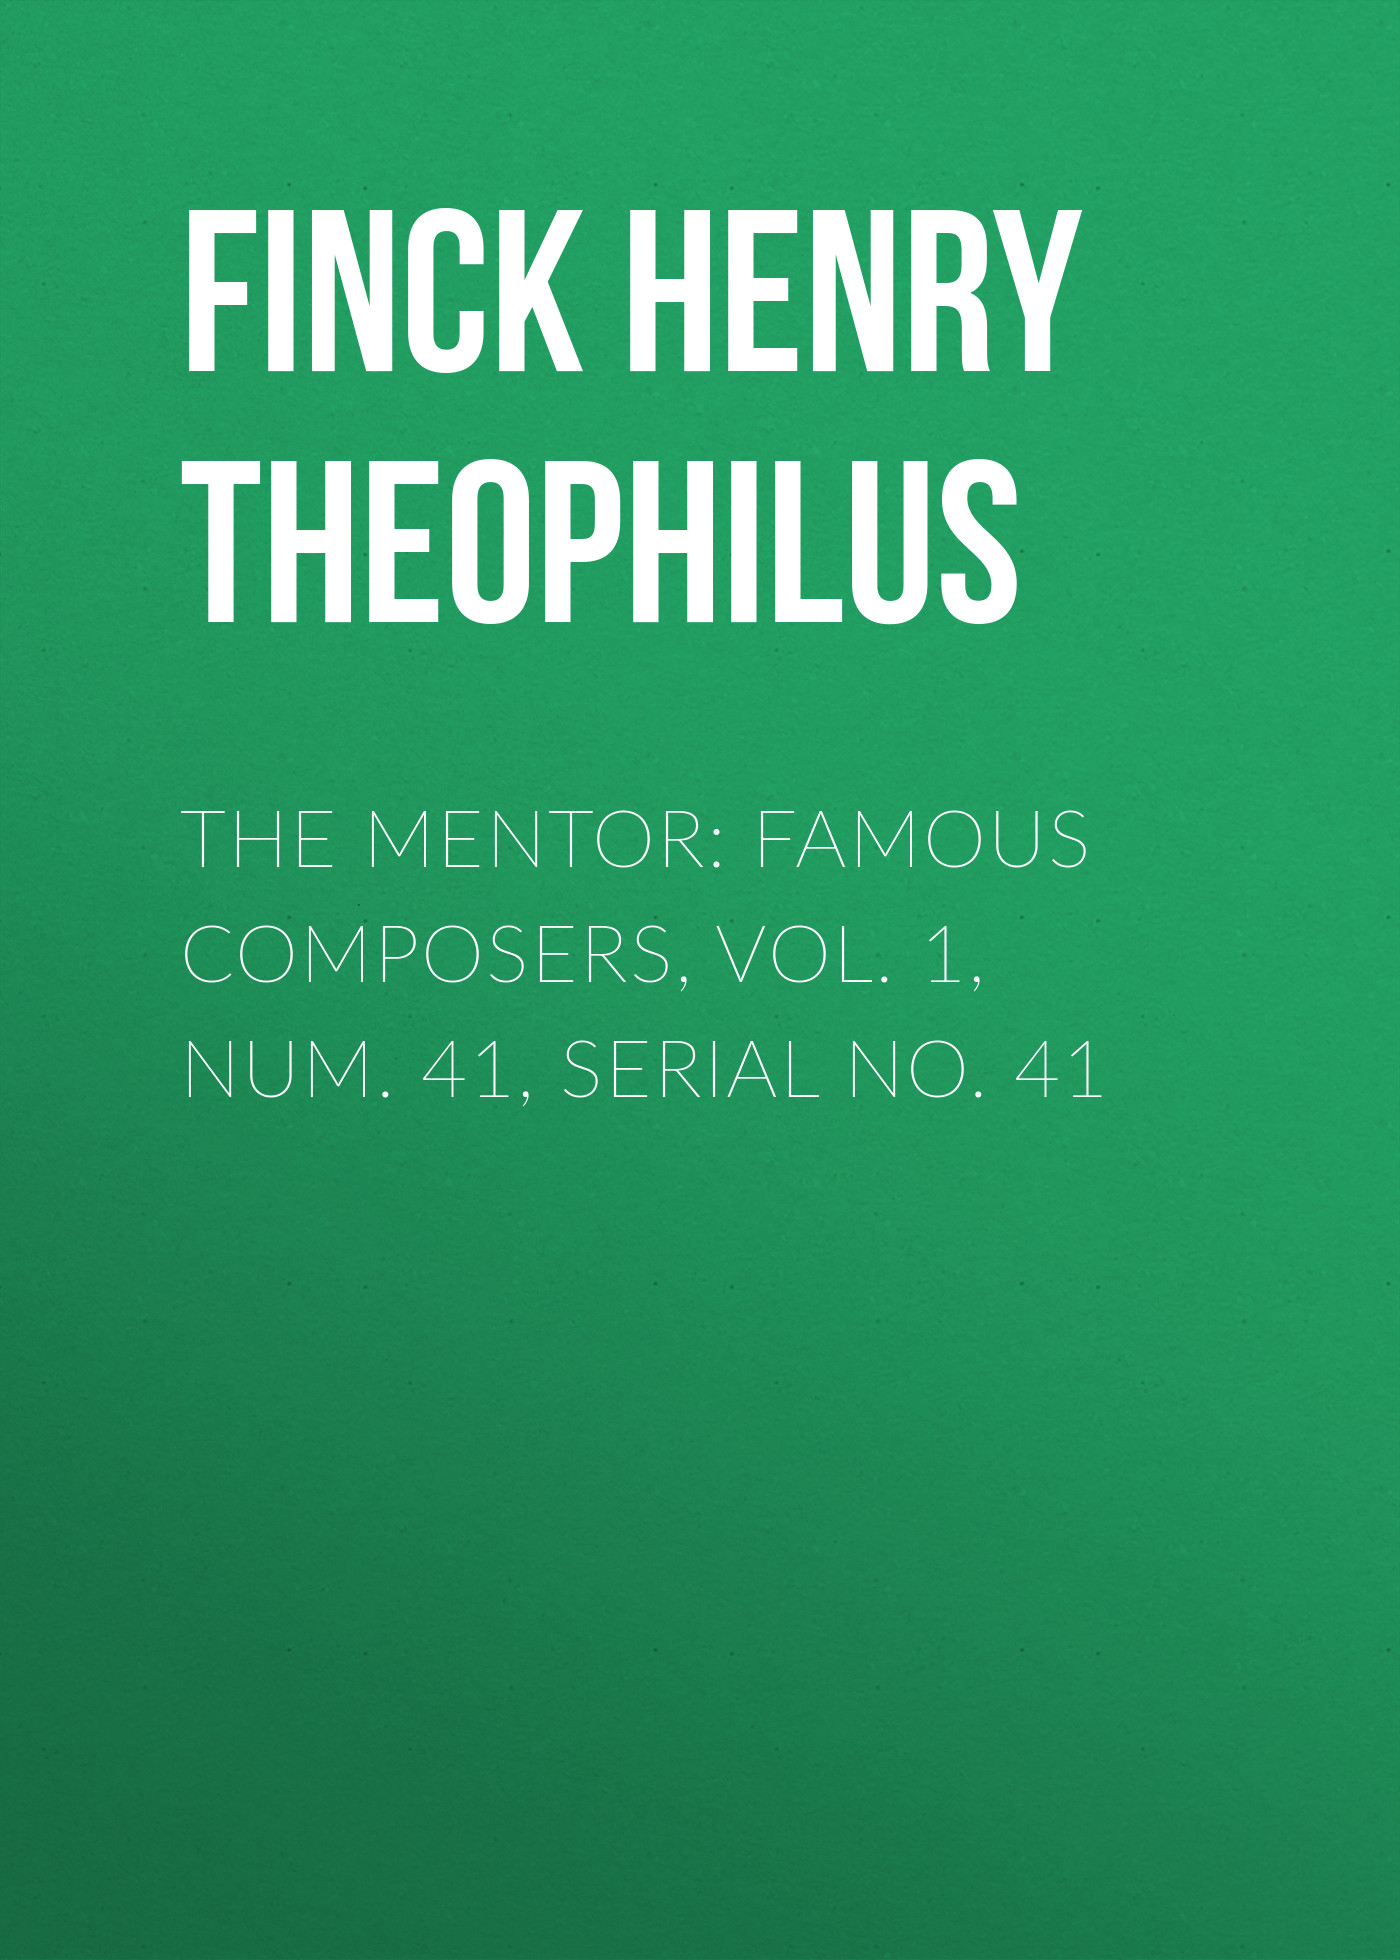 Finck Henry Theophilus The Mentor: Famous Composers, Vol. 1, Num. 41, Serial No. 41 h finck 8 hymns